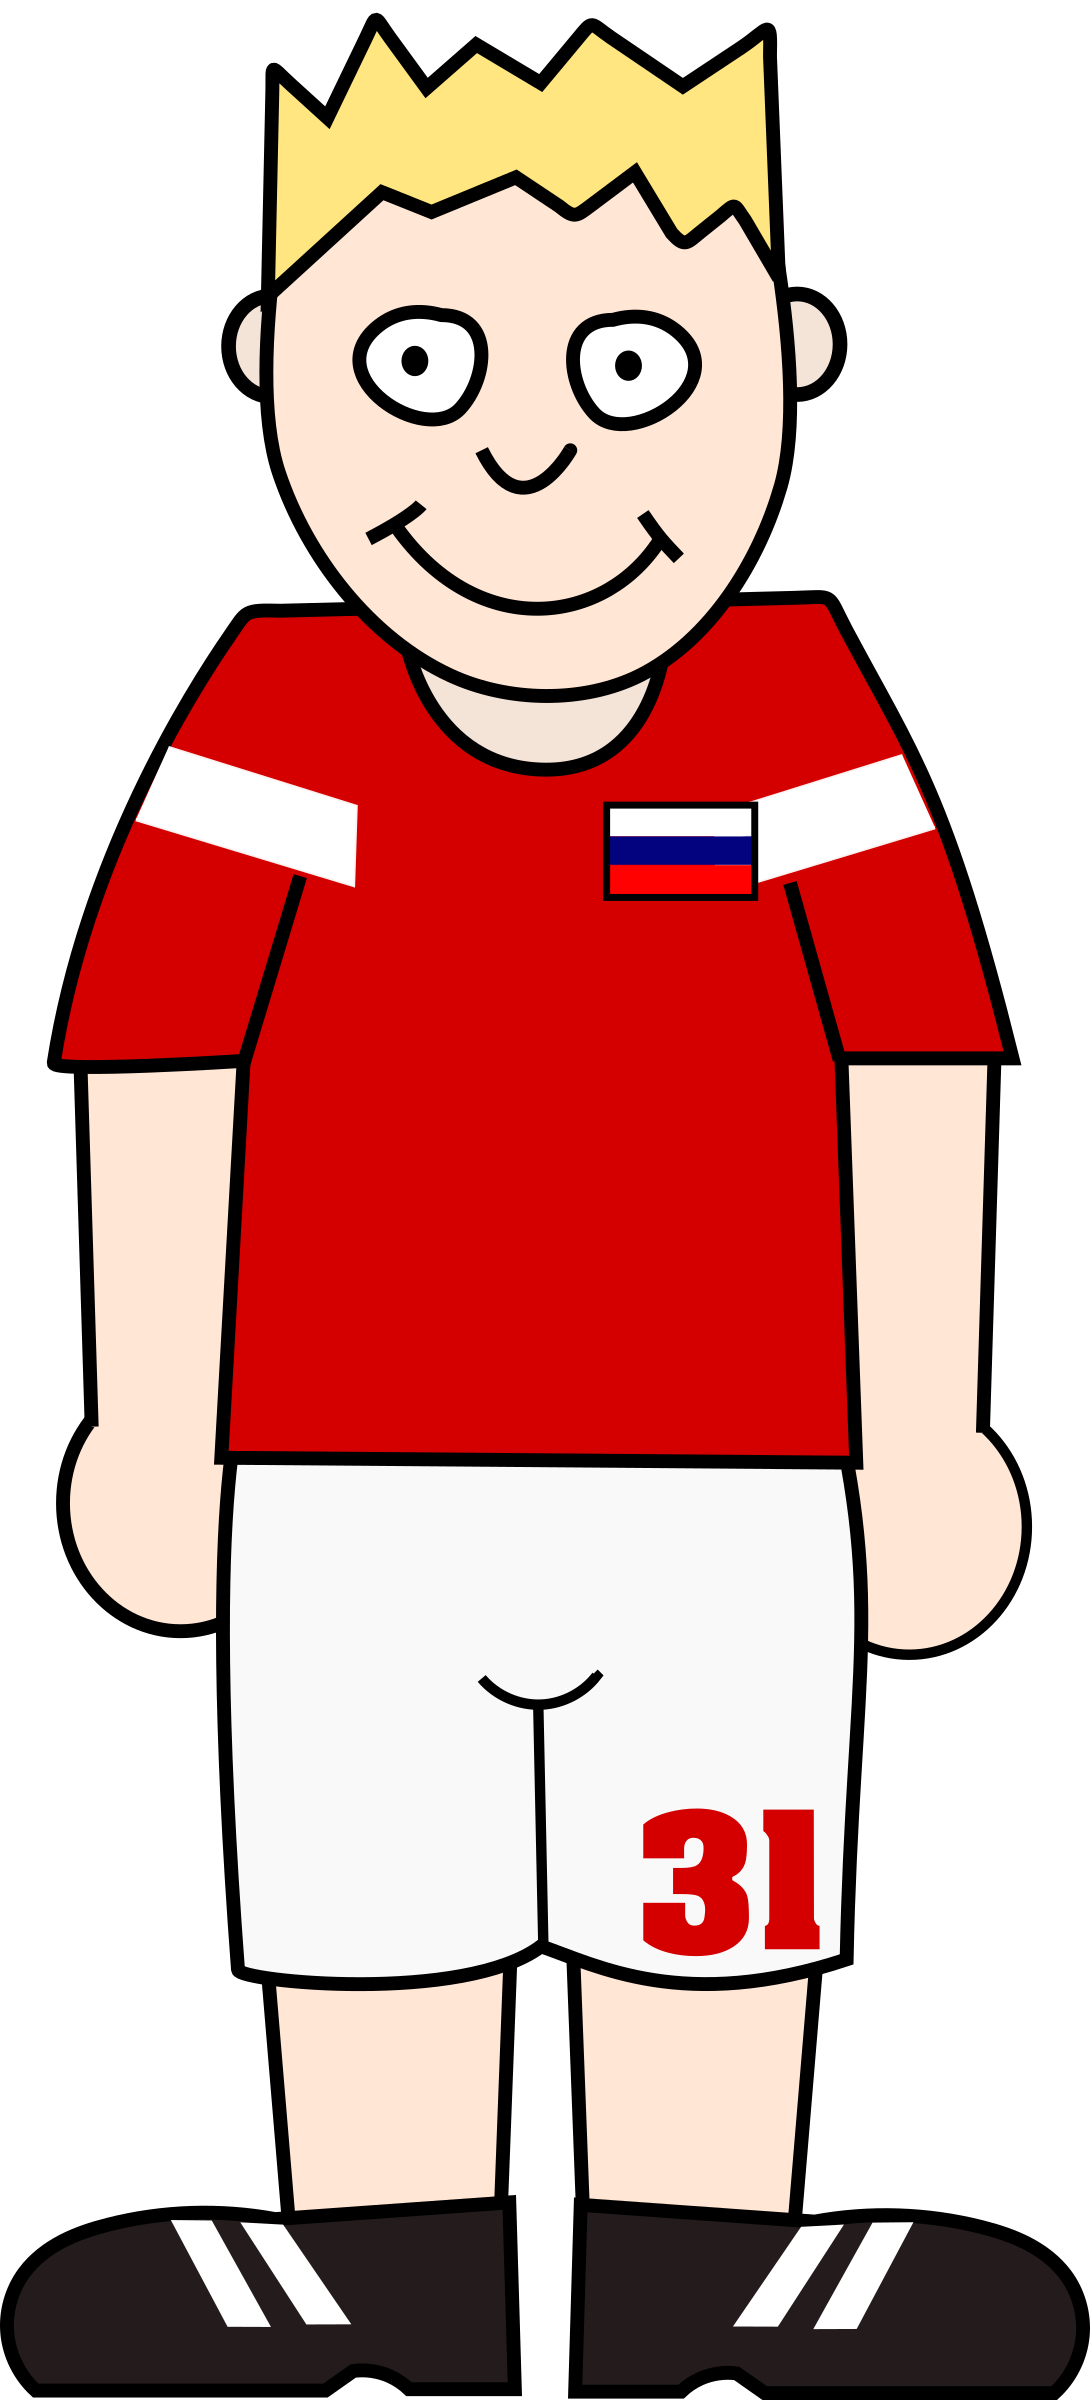 Football player russia by Bingenberg